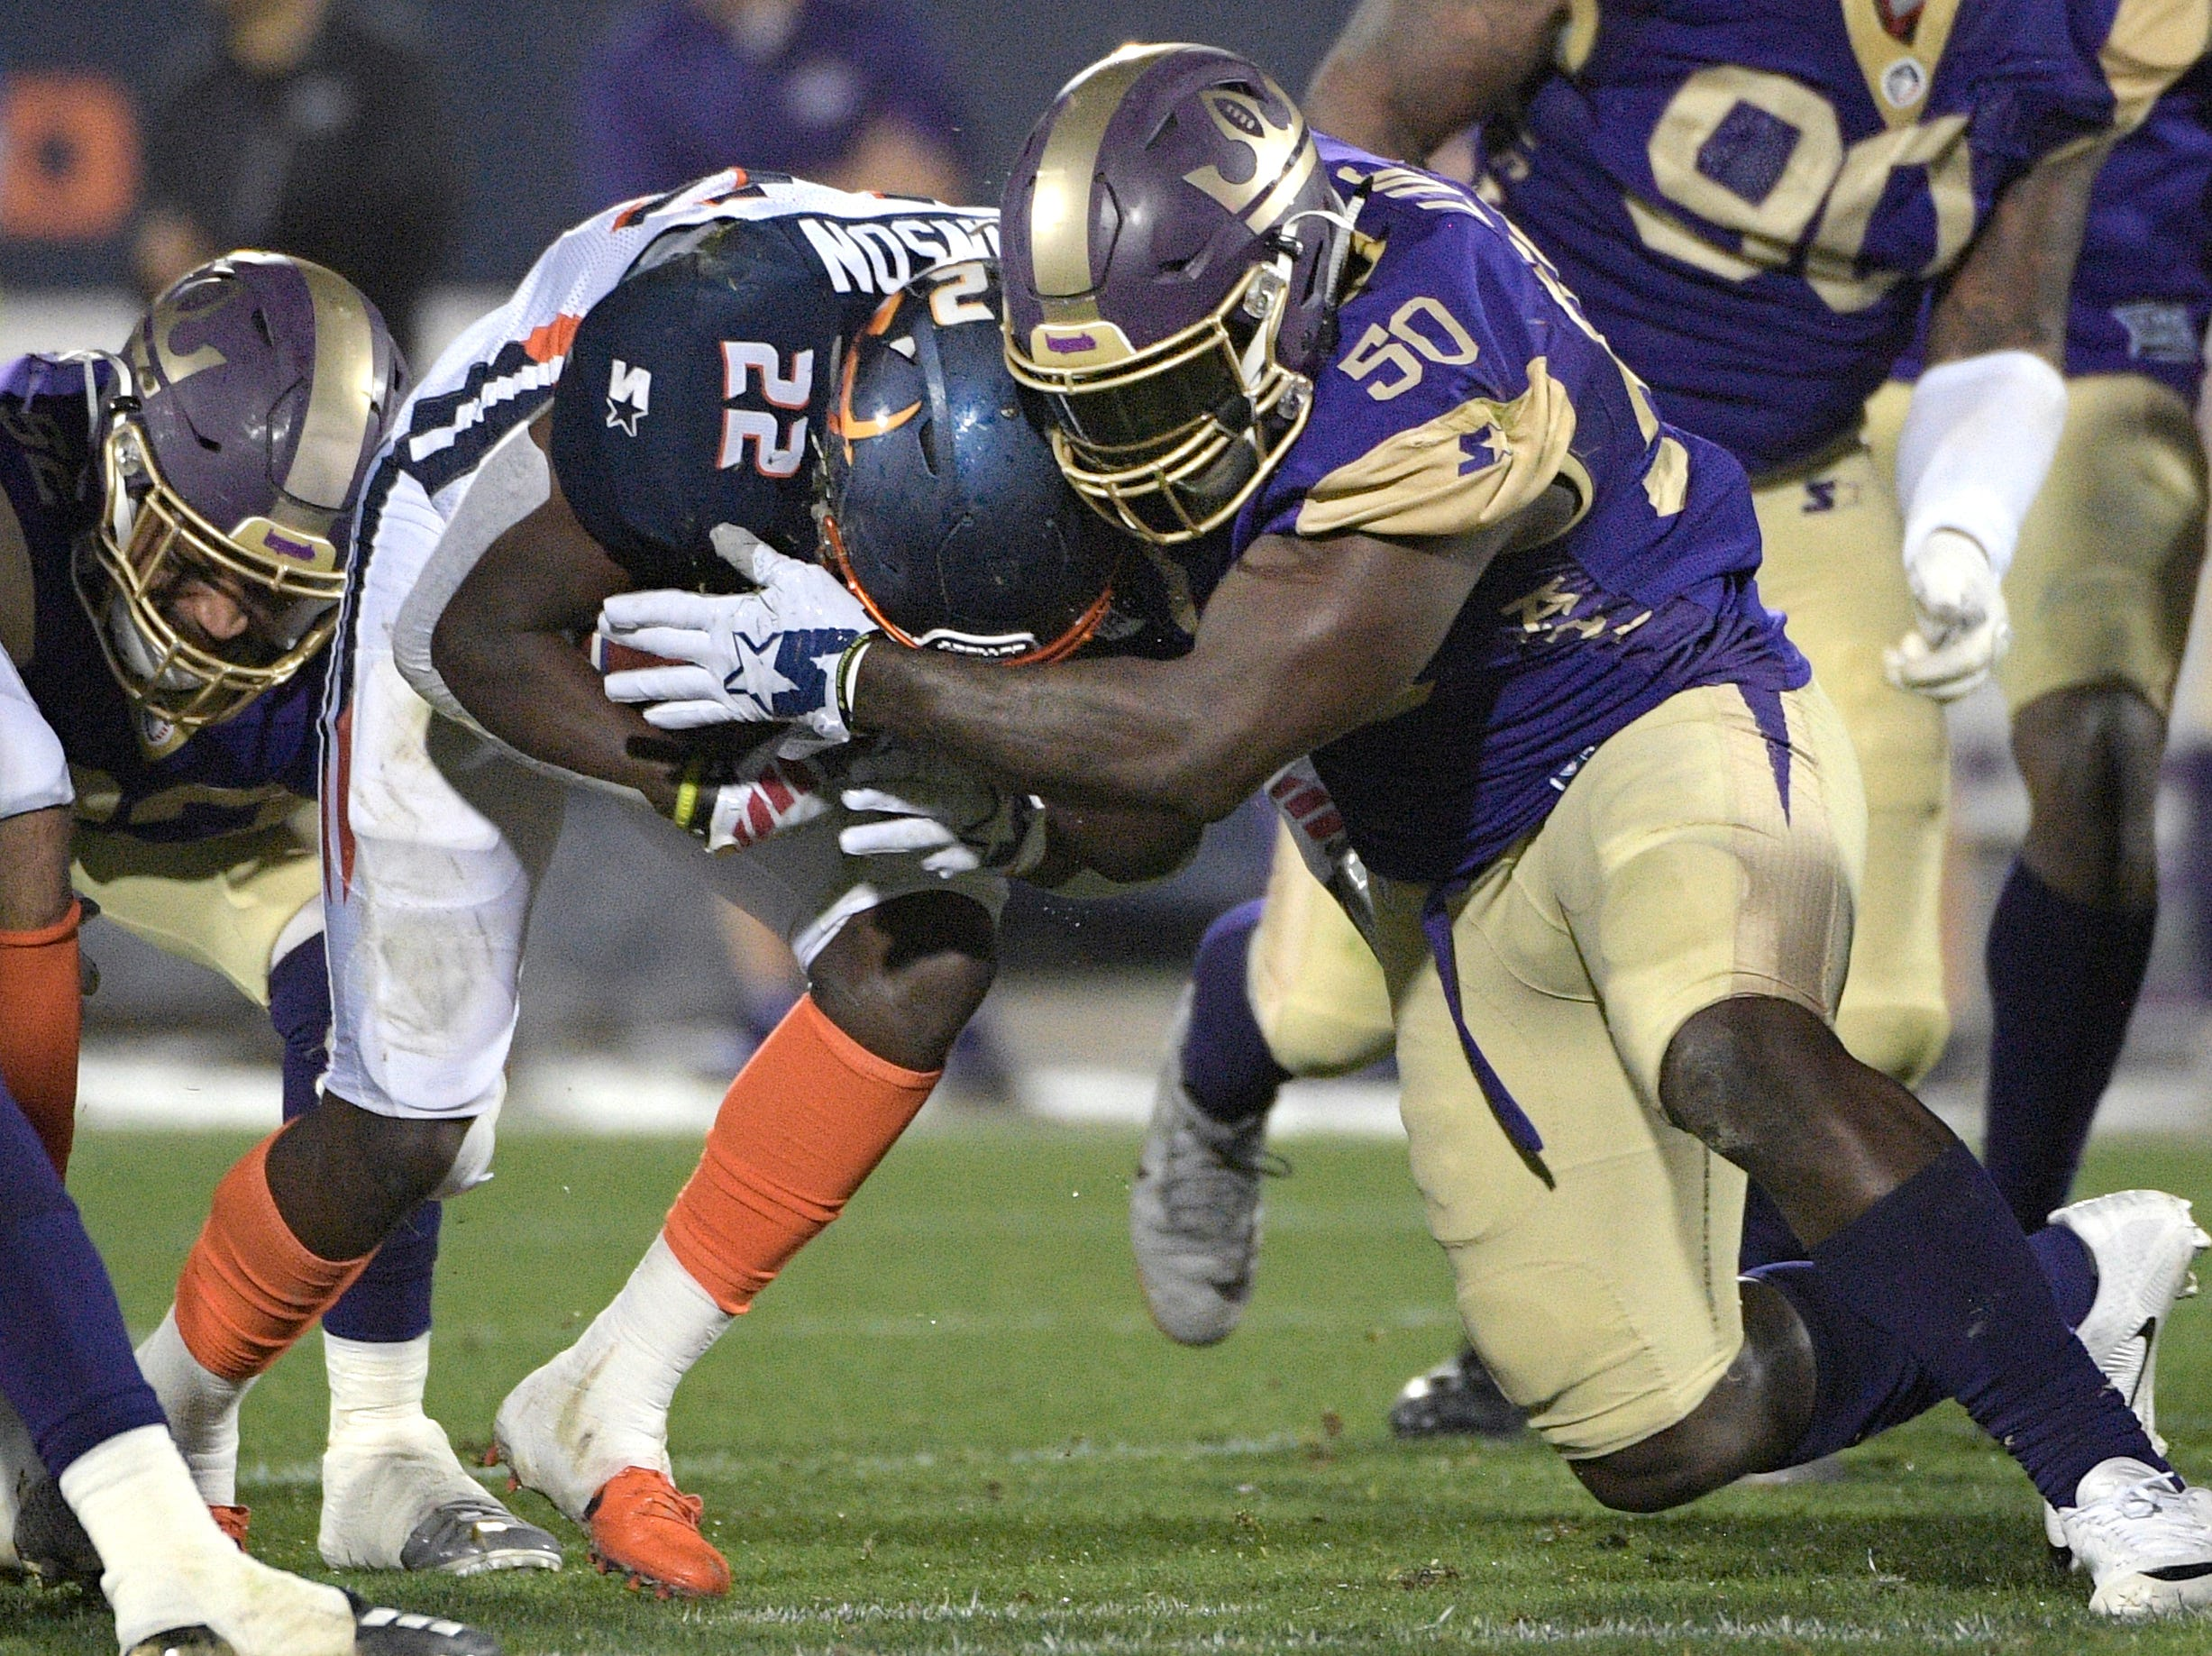 Orlando Apollos running back D'Ernest Johnson (22) is stopped by Atlanta Legends linebacker Jeff Luc (50) after rushing for a short gain during the first half of an Alliance of American Football game Saturday, Feb. 9, 2019, in Orlando, Fla. (AP Photo/Phelan M. Ebenhack)